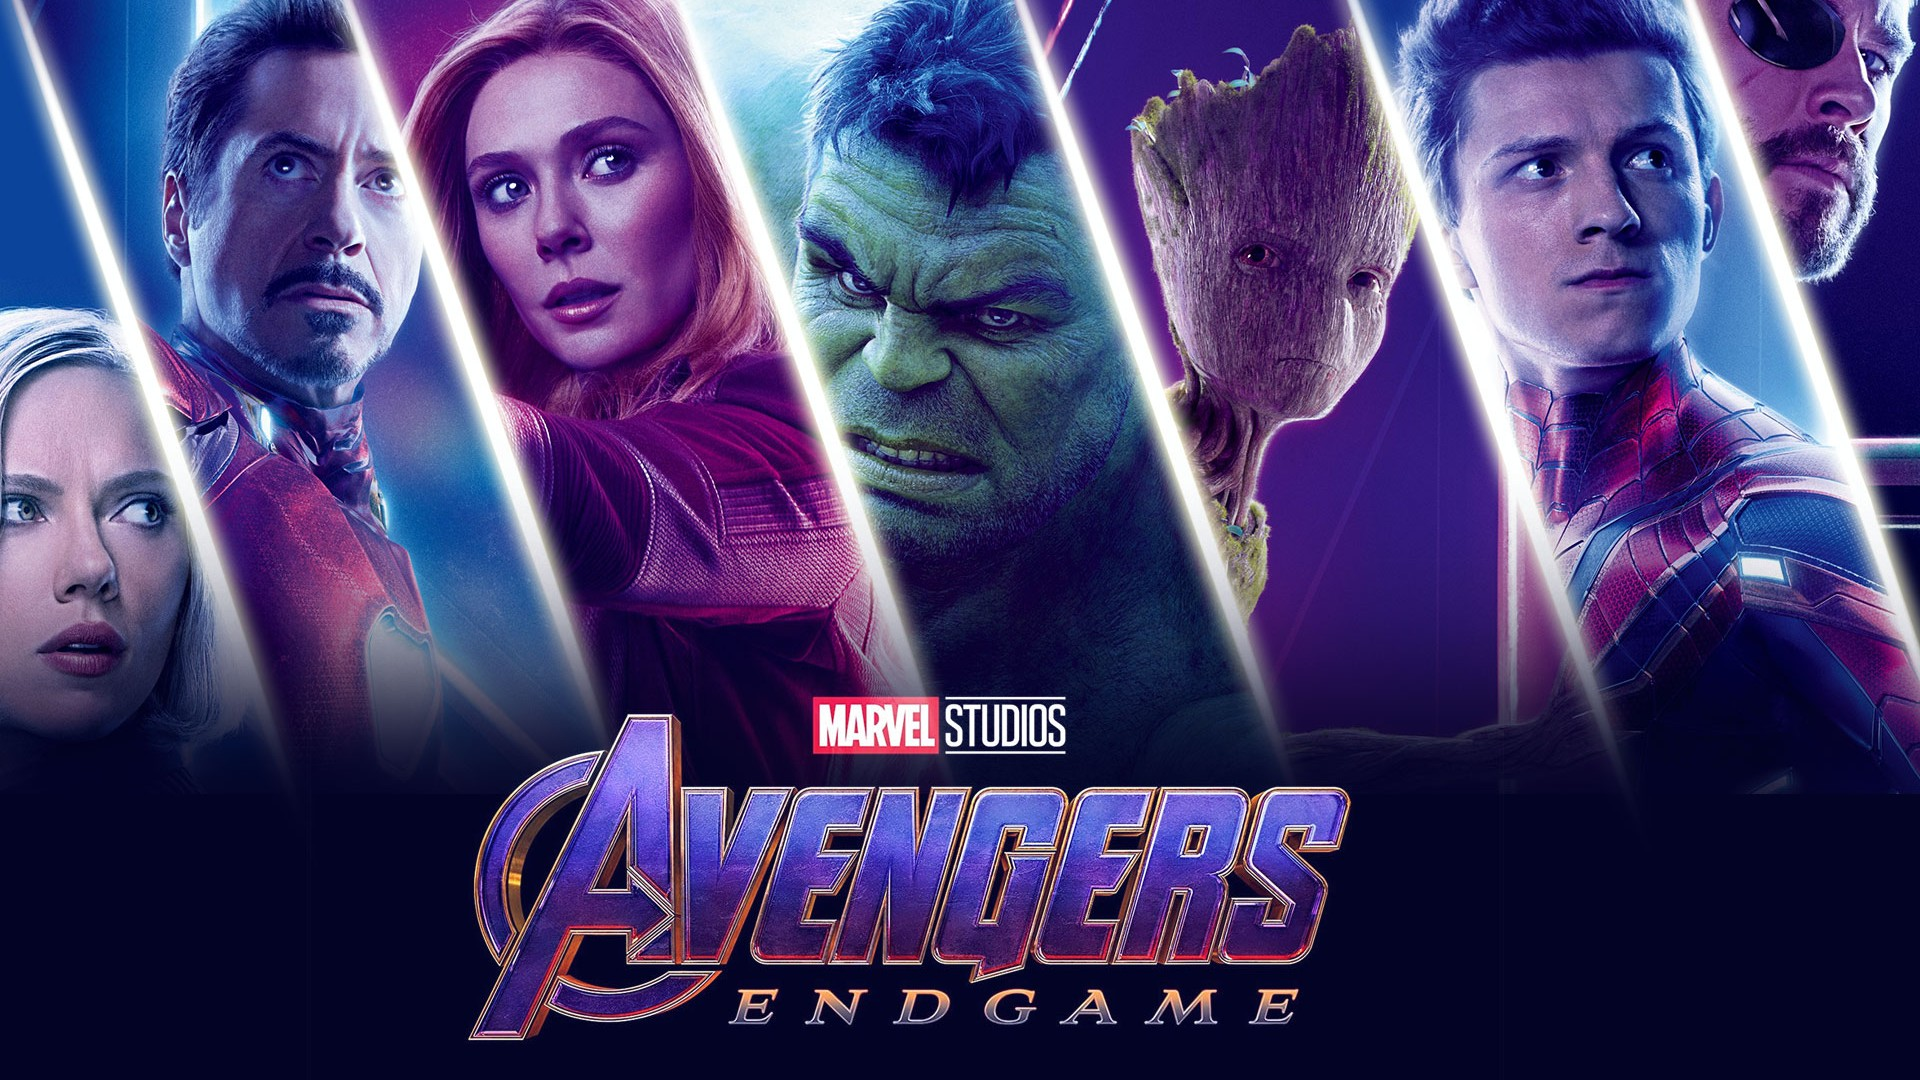 Free Download Wallpapers Avengers Endgame 2019 Movie Poster Wallpaper Hd 1920x1080 For Your Desktop Mobile Tablet Explore 25 Marvel S Avengers Endgame Wallpapers Marvel S Avengers Endgame Wallpapers Avengers Endgame Wallpapers